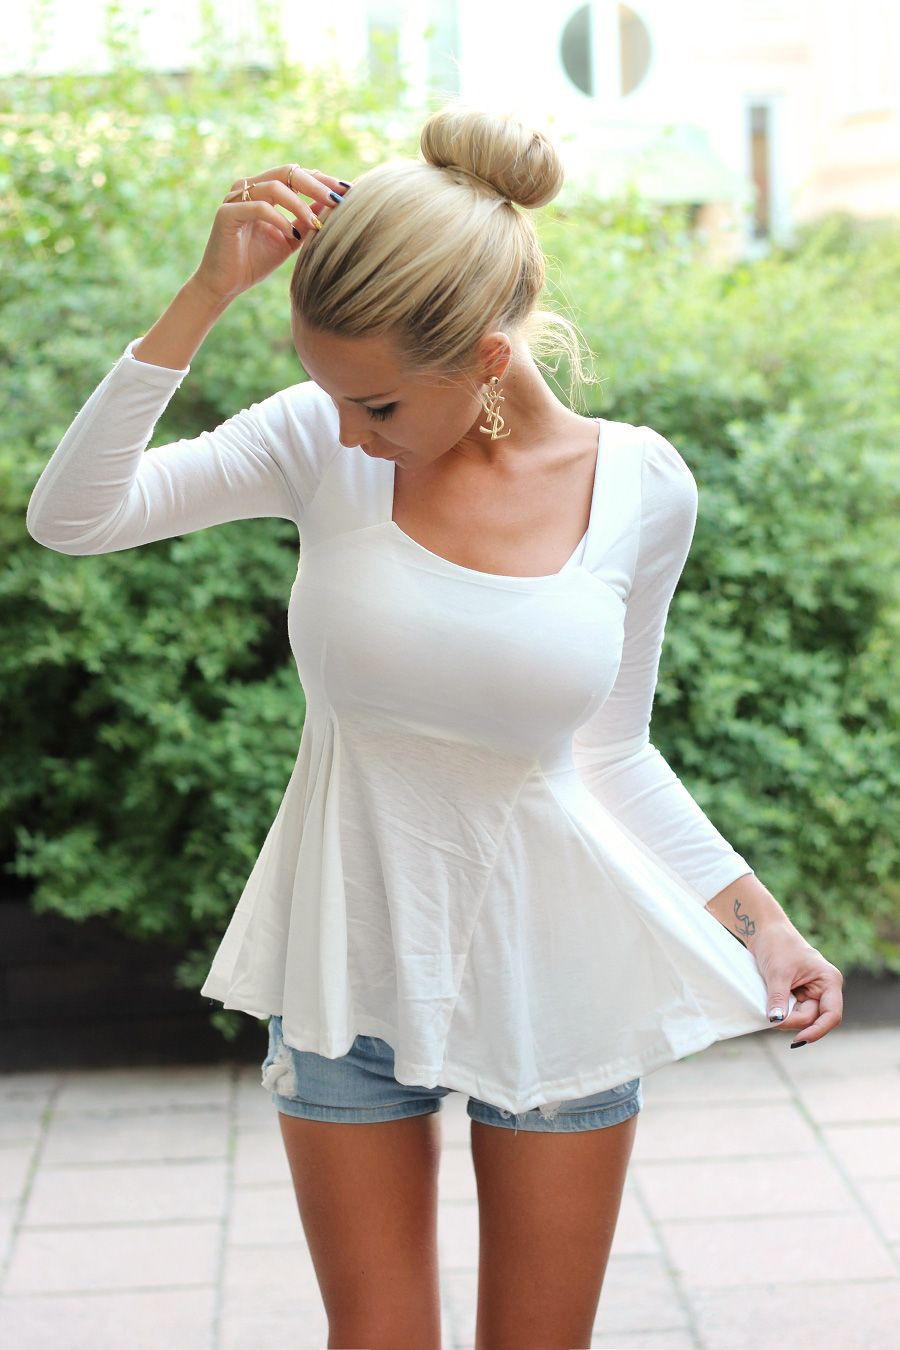 Shirts that flare out at bottom